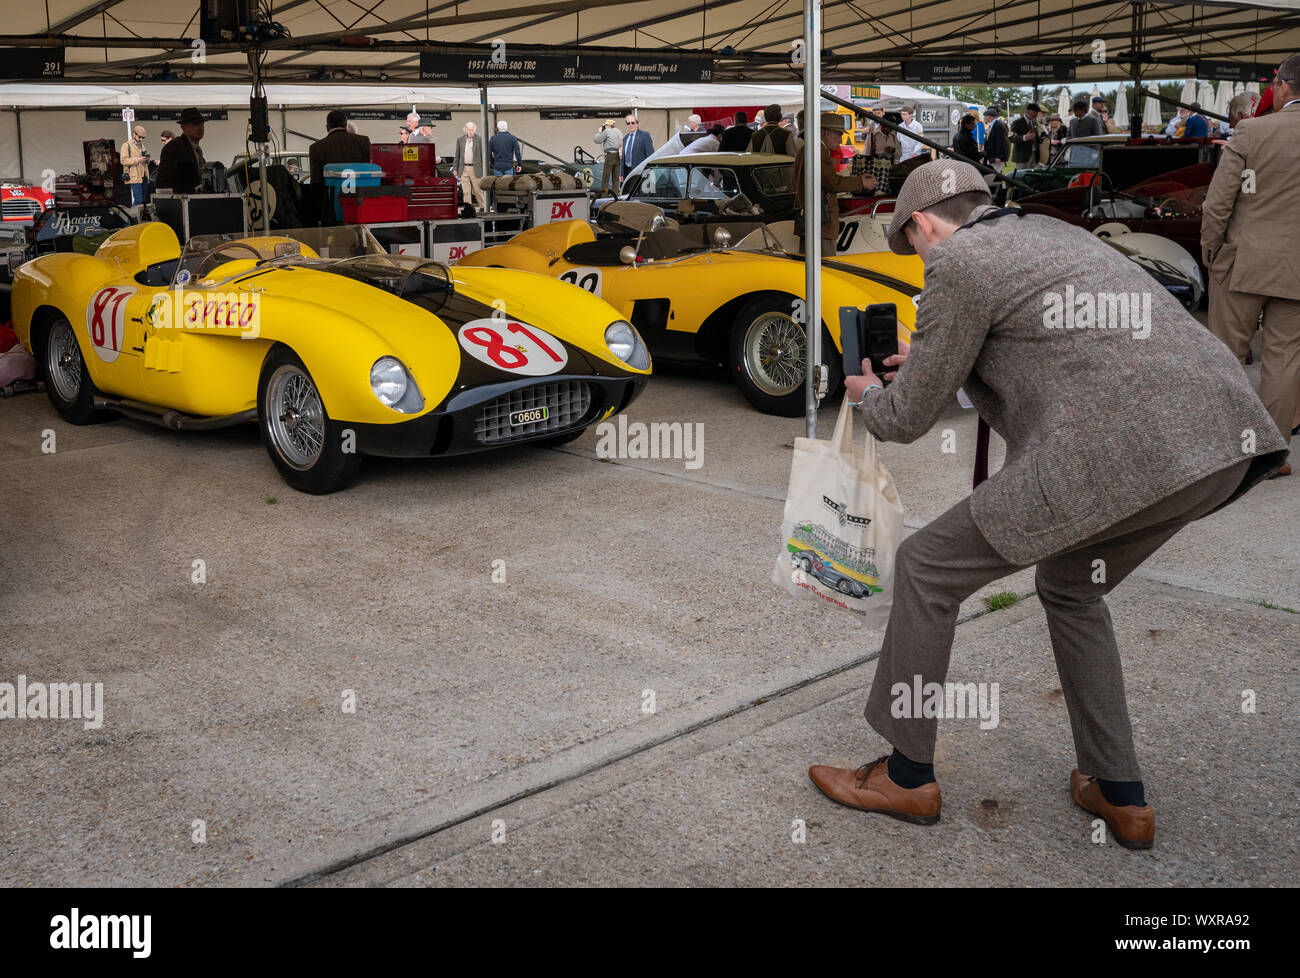 Vintage cars from the 1930's to the 1950's in the paddock during the Goodwood Revival car festival, UK. Stock Photo